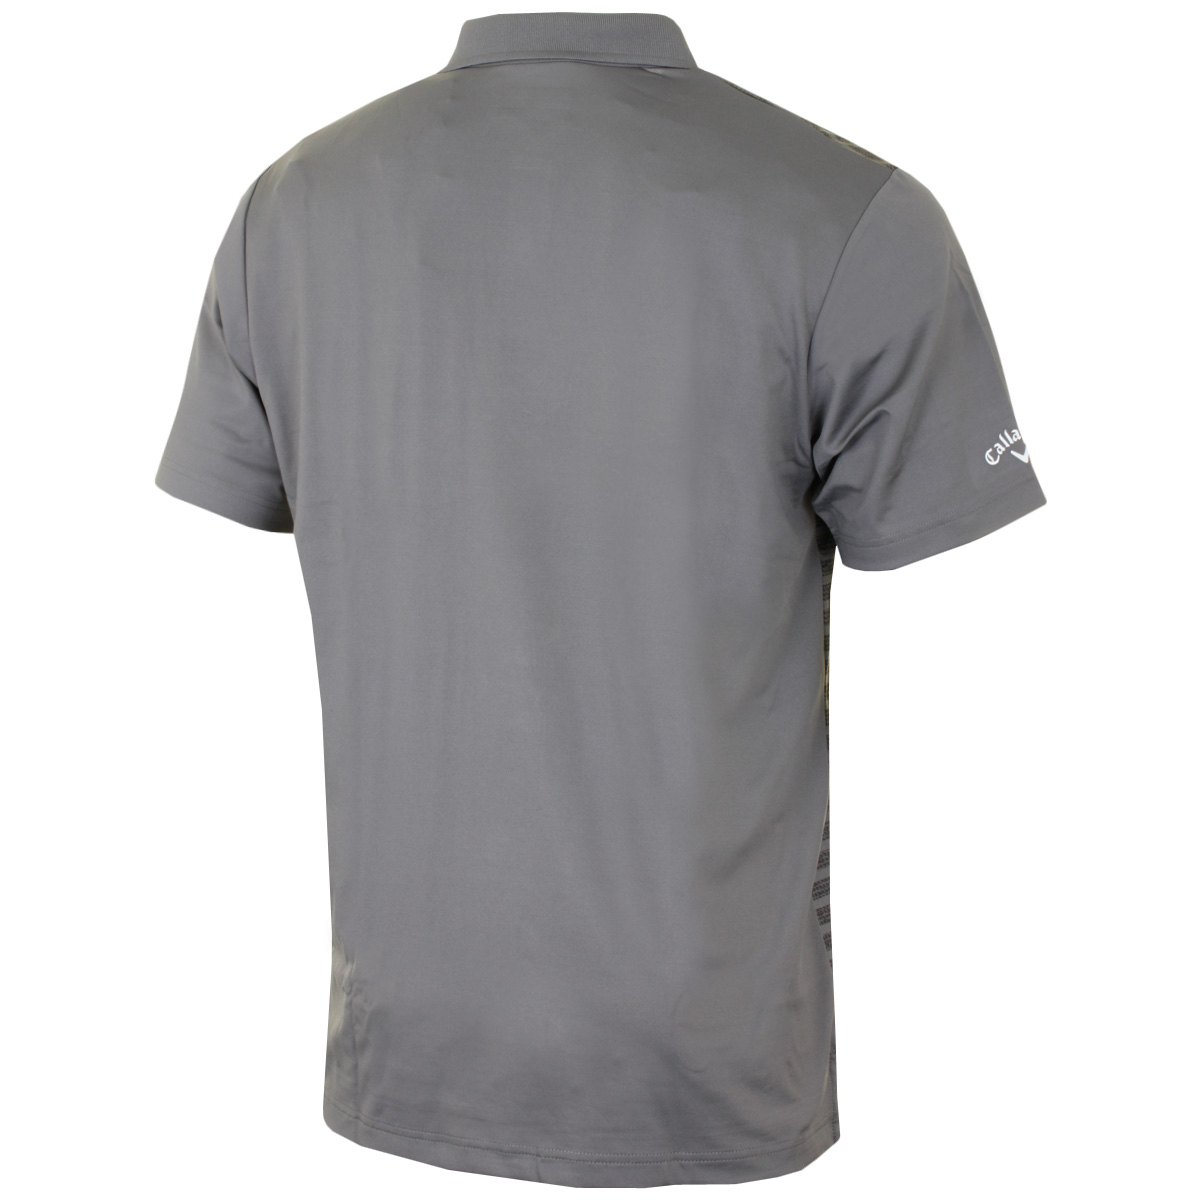 Callaway-Golf-Mens-Ombre-Pocket-Opti-Dri-Stretch-Tech-Polo-Shirt-51-OFF-RRP thumbnail 5